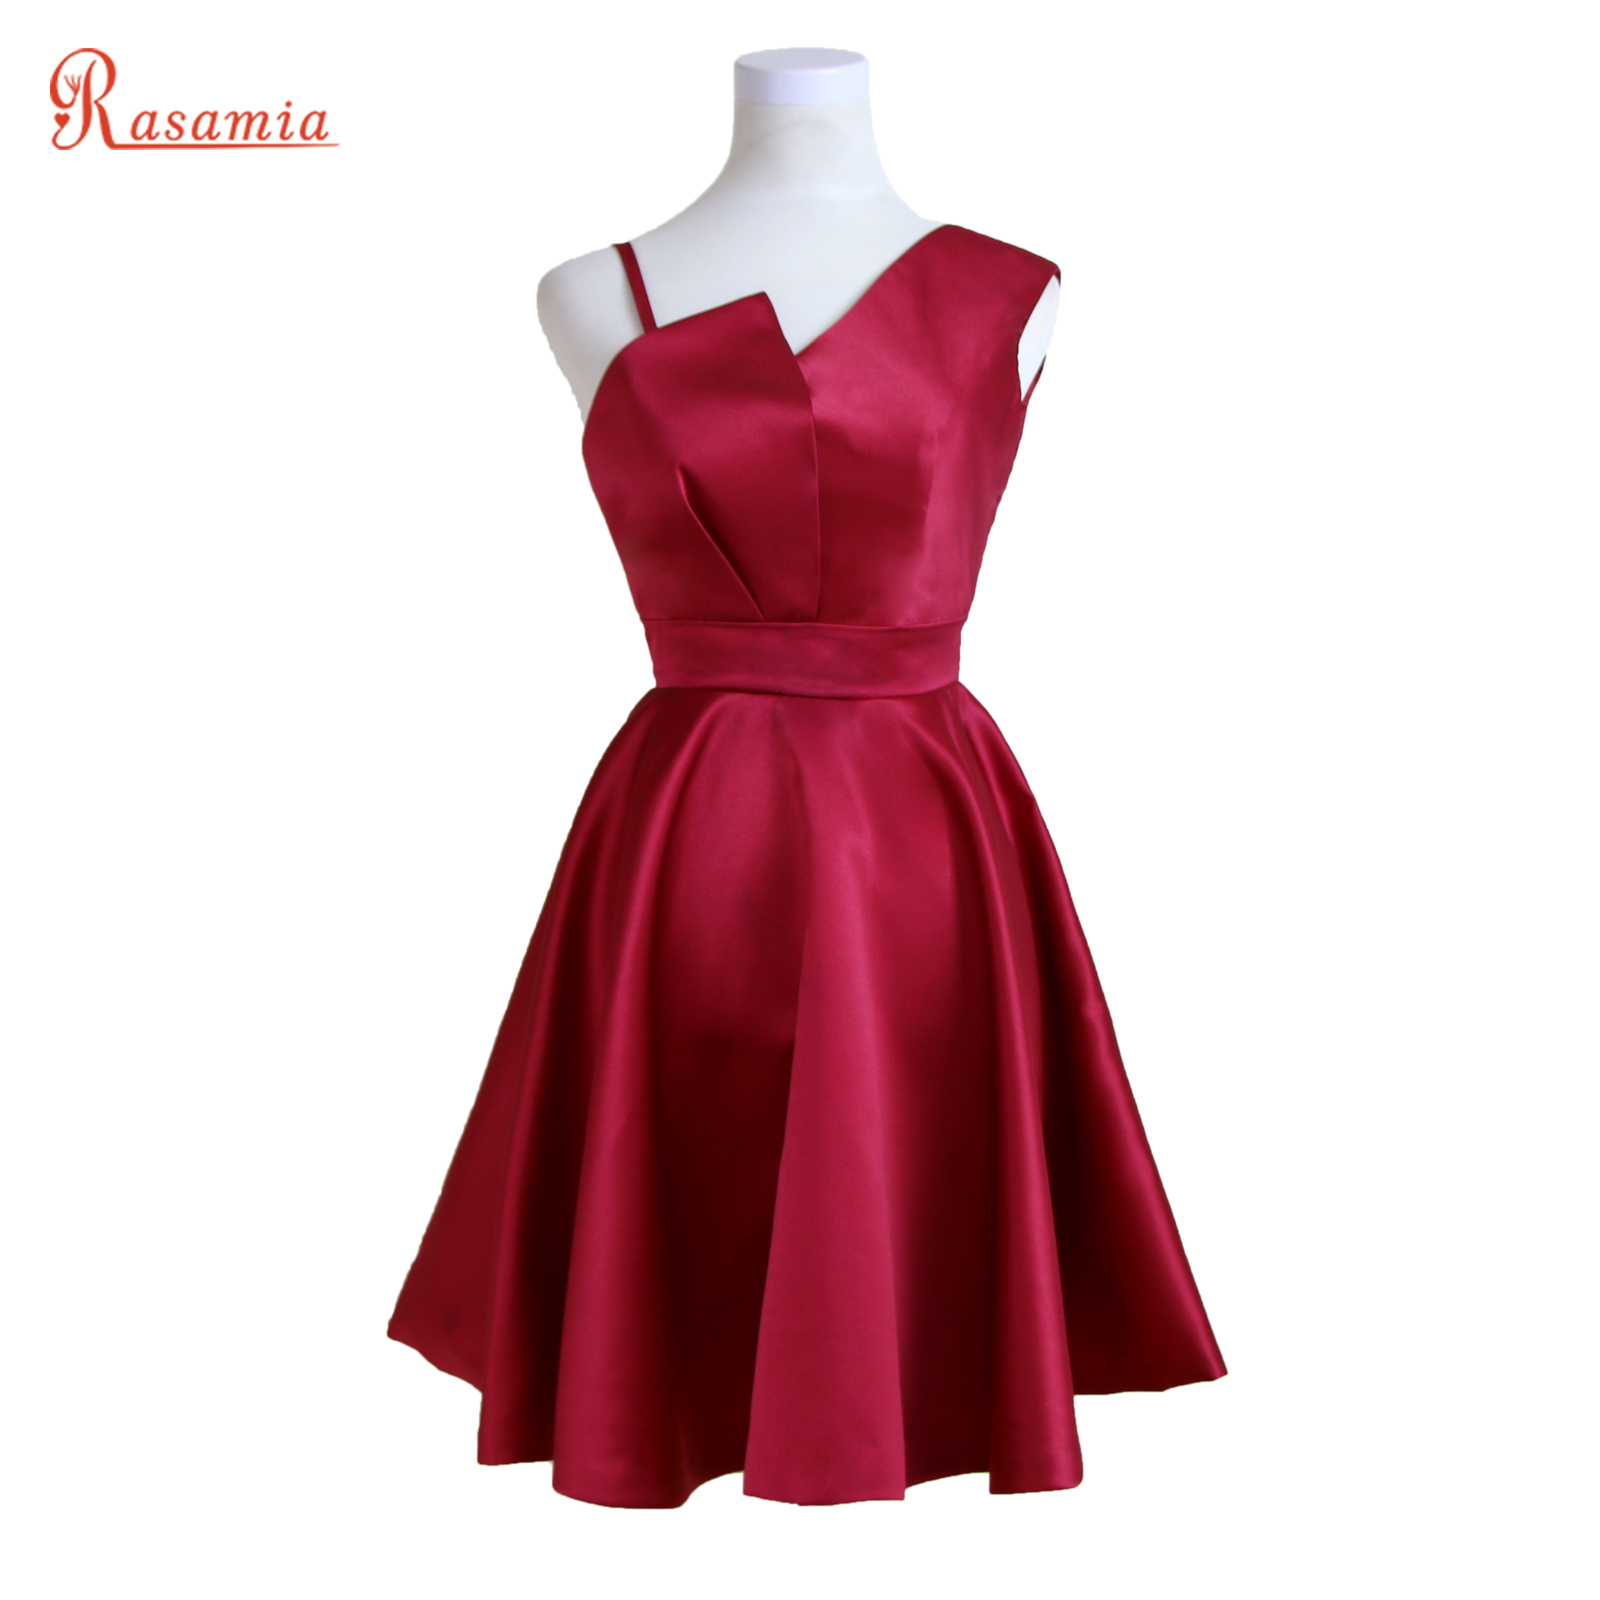 Dark red prom dress plus size knee length sexy cocktaill for Plus size dresses weddings and proms